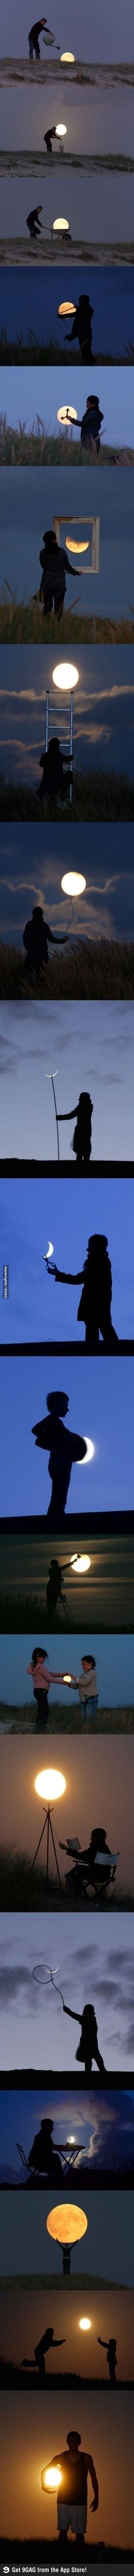 Funny pictures about Having fun with the moon. Oh, and cool pics about Having fun with the moon. Also, Having fun with the moon. Creative Photography, Amazing Photography, Art Photography, Photography Lighting, Perspective Photography, Wedding Photography, Great Photos, Cool Pictures, Beautiful Pictures